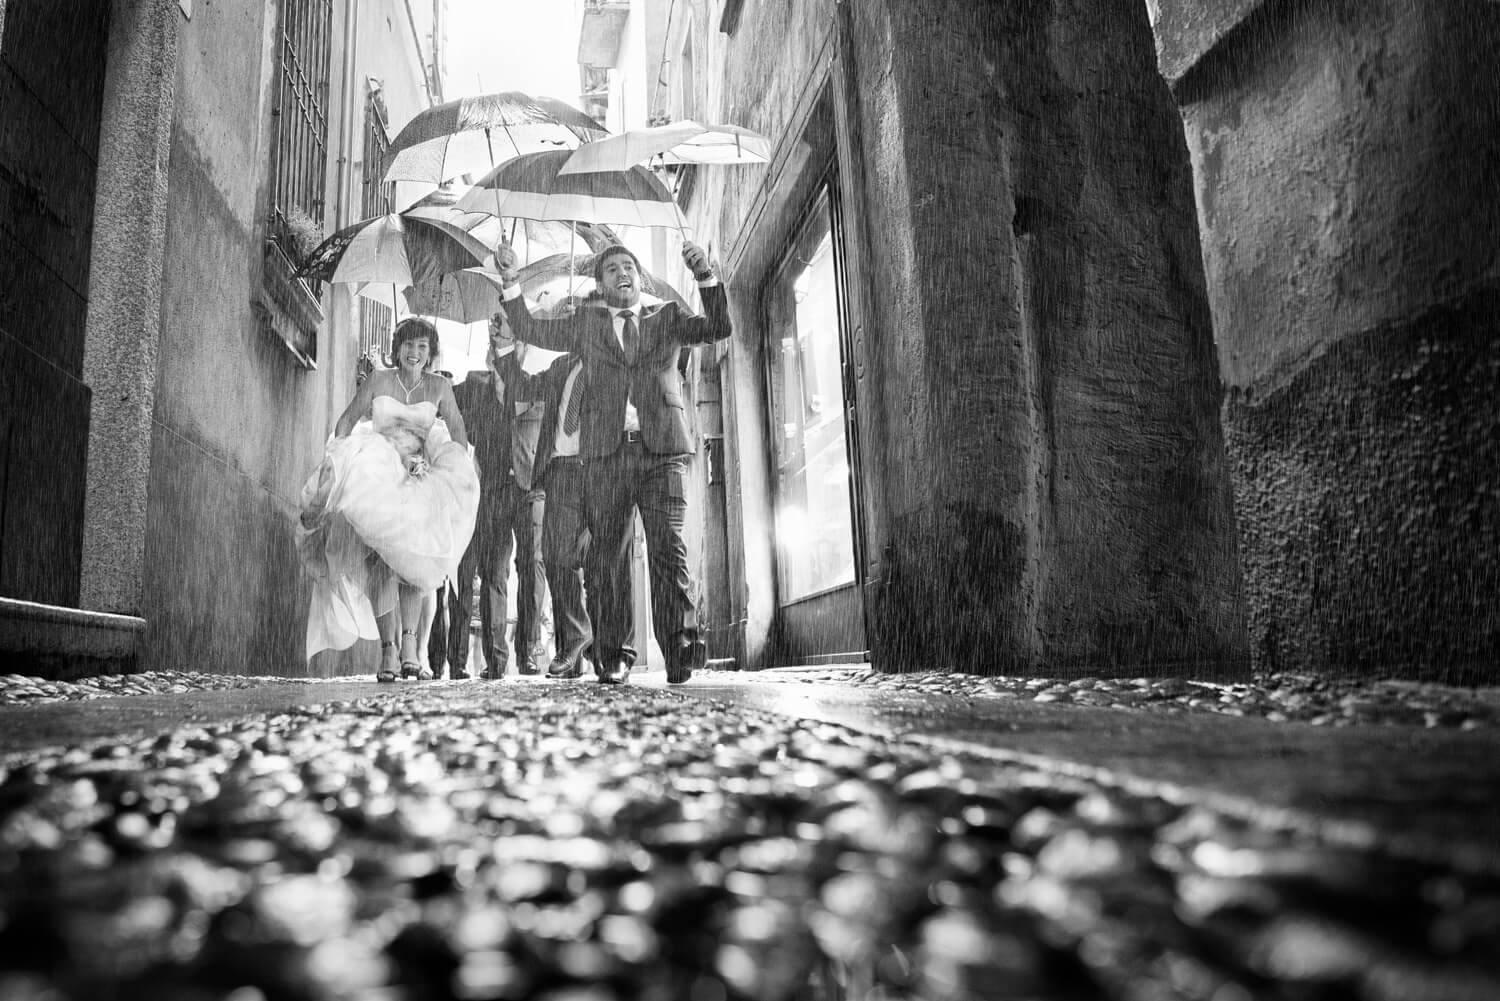 wedding rain. Lake d'Orta, Italy